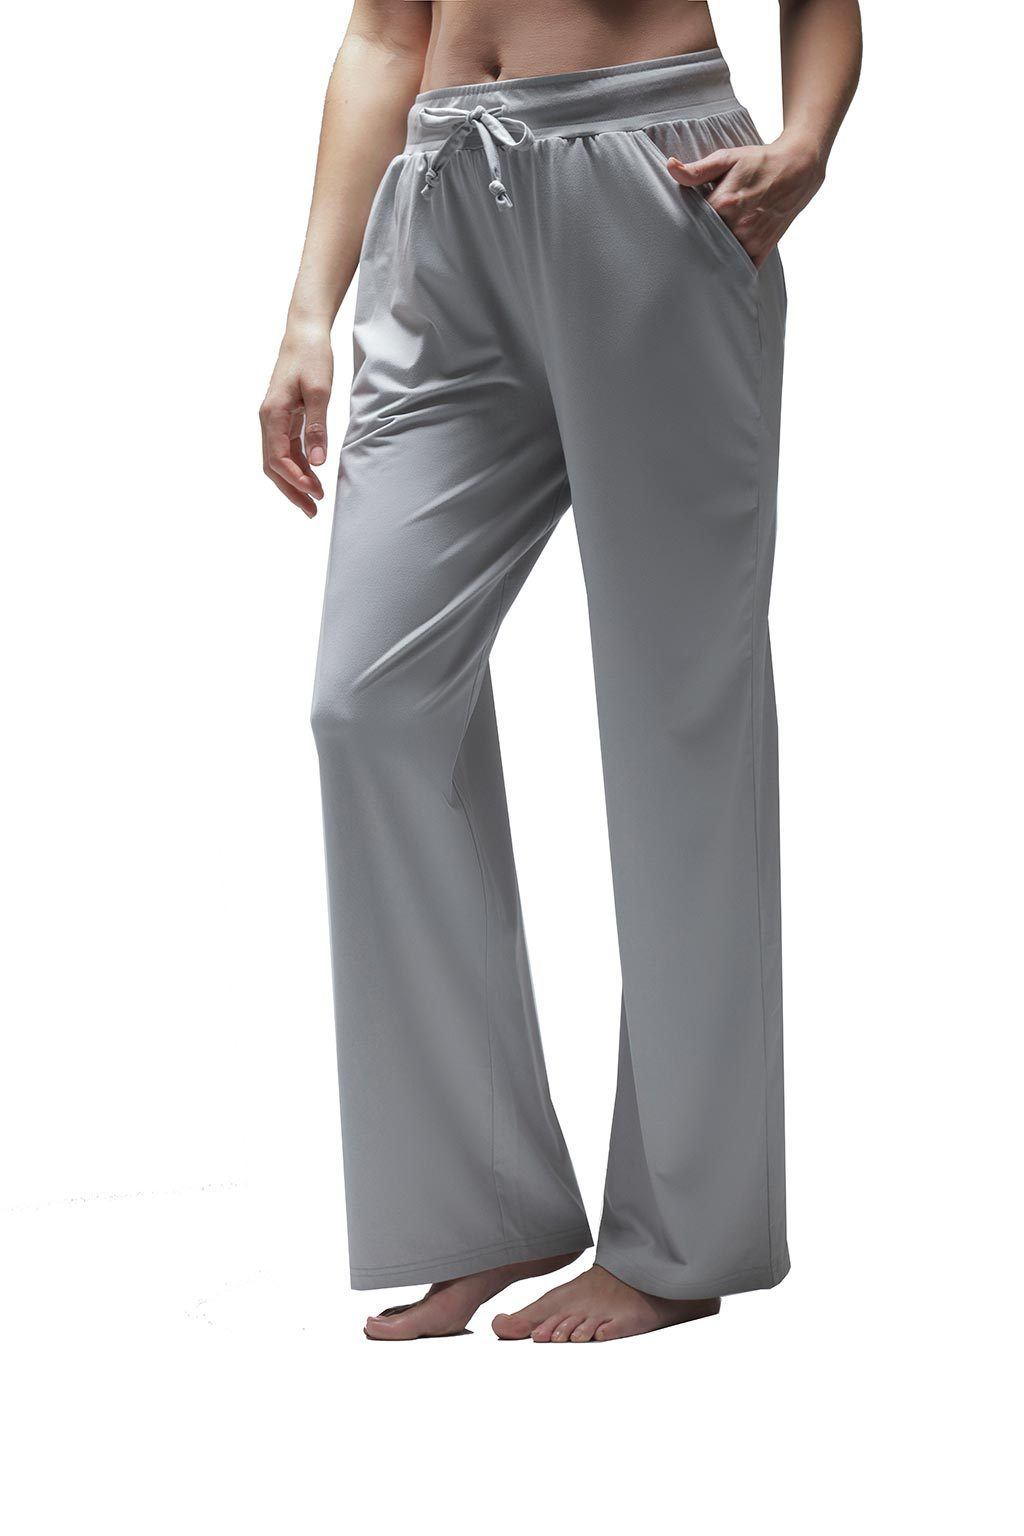 Women's Wide-Leg Pull On Pant - Silver Heather